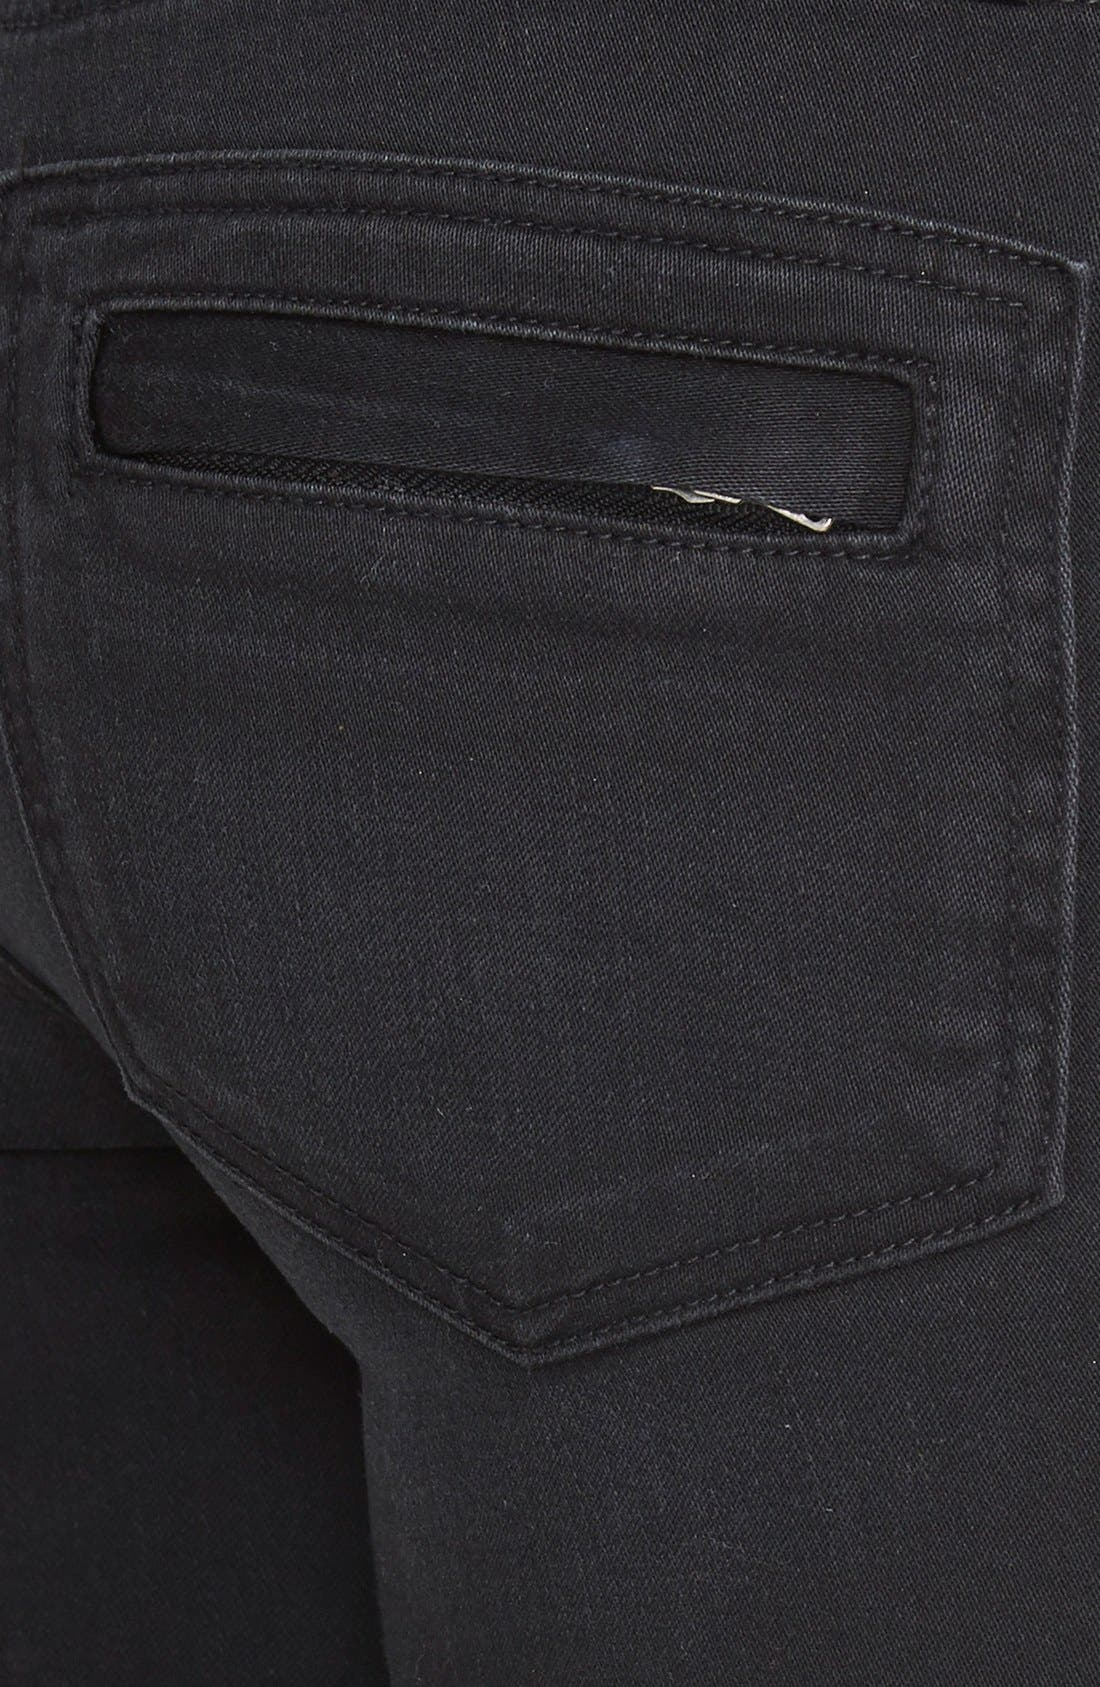 Alternate Image 3  - Paige Denim 'Ollie' Ultra Skinny Jeans (Cleo No Whiskers)